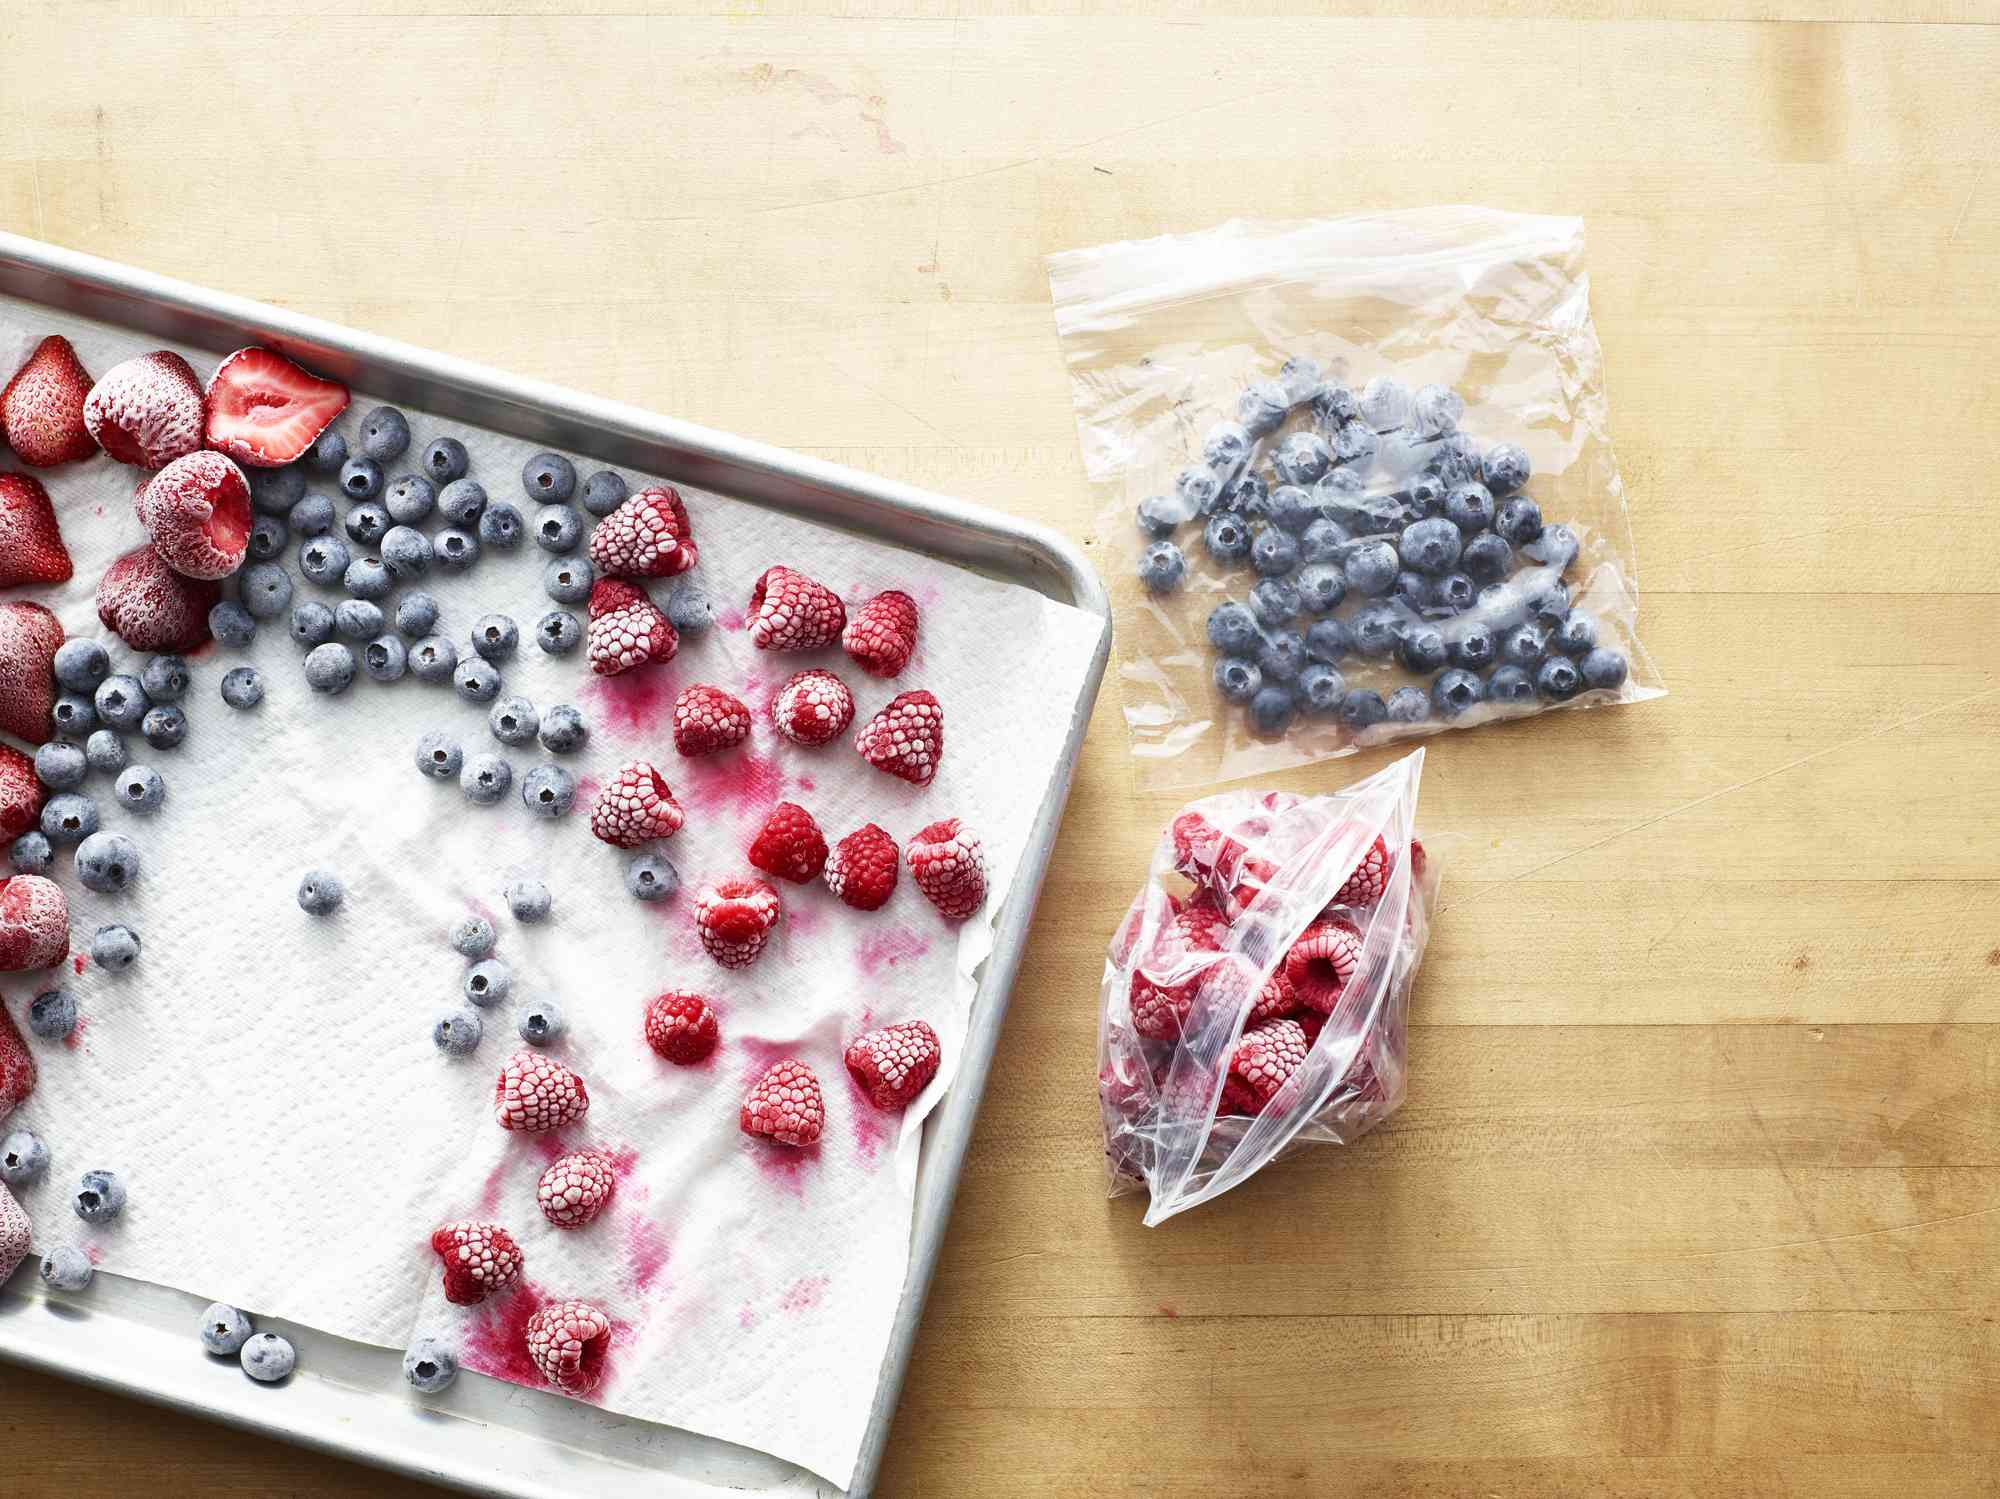 Frozen berries on baking sheet and in plastic bags